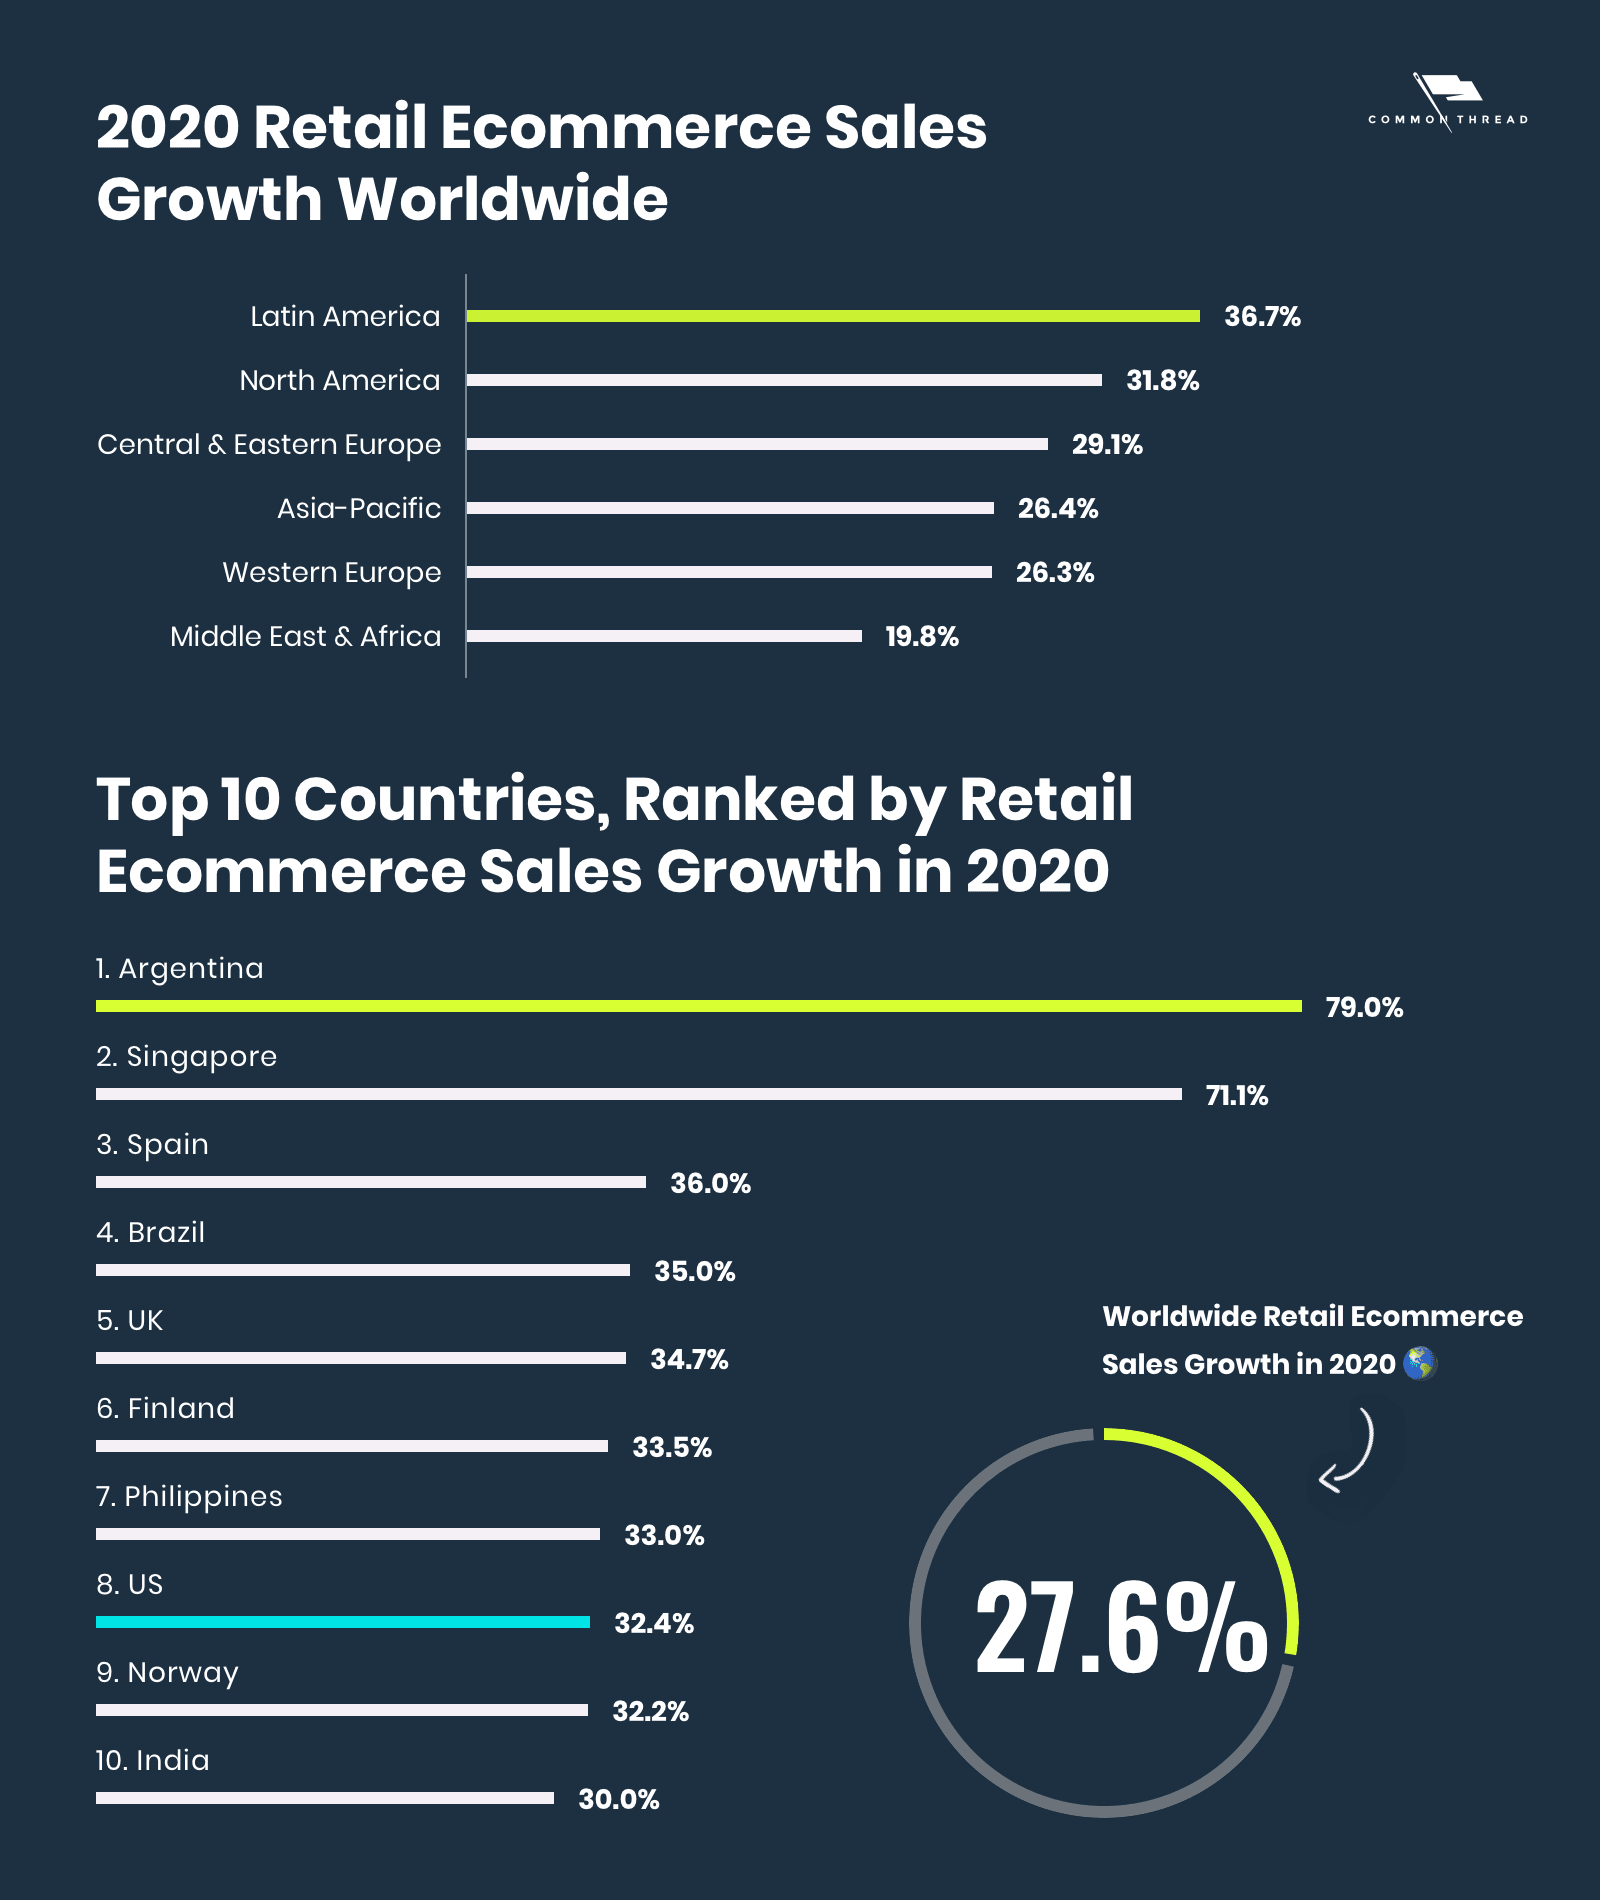 Retail Ecommerce Sales Growth Worldwide and Top 10 Countries